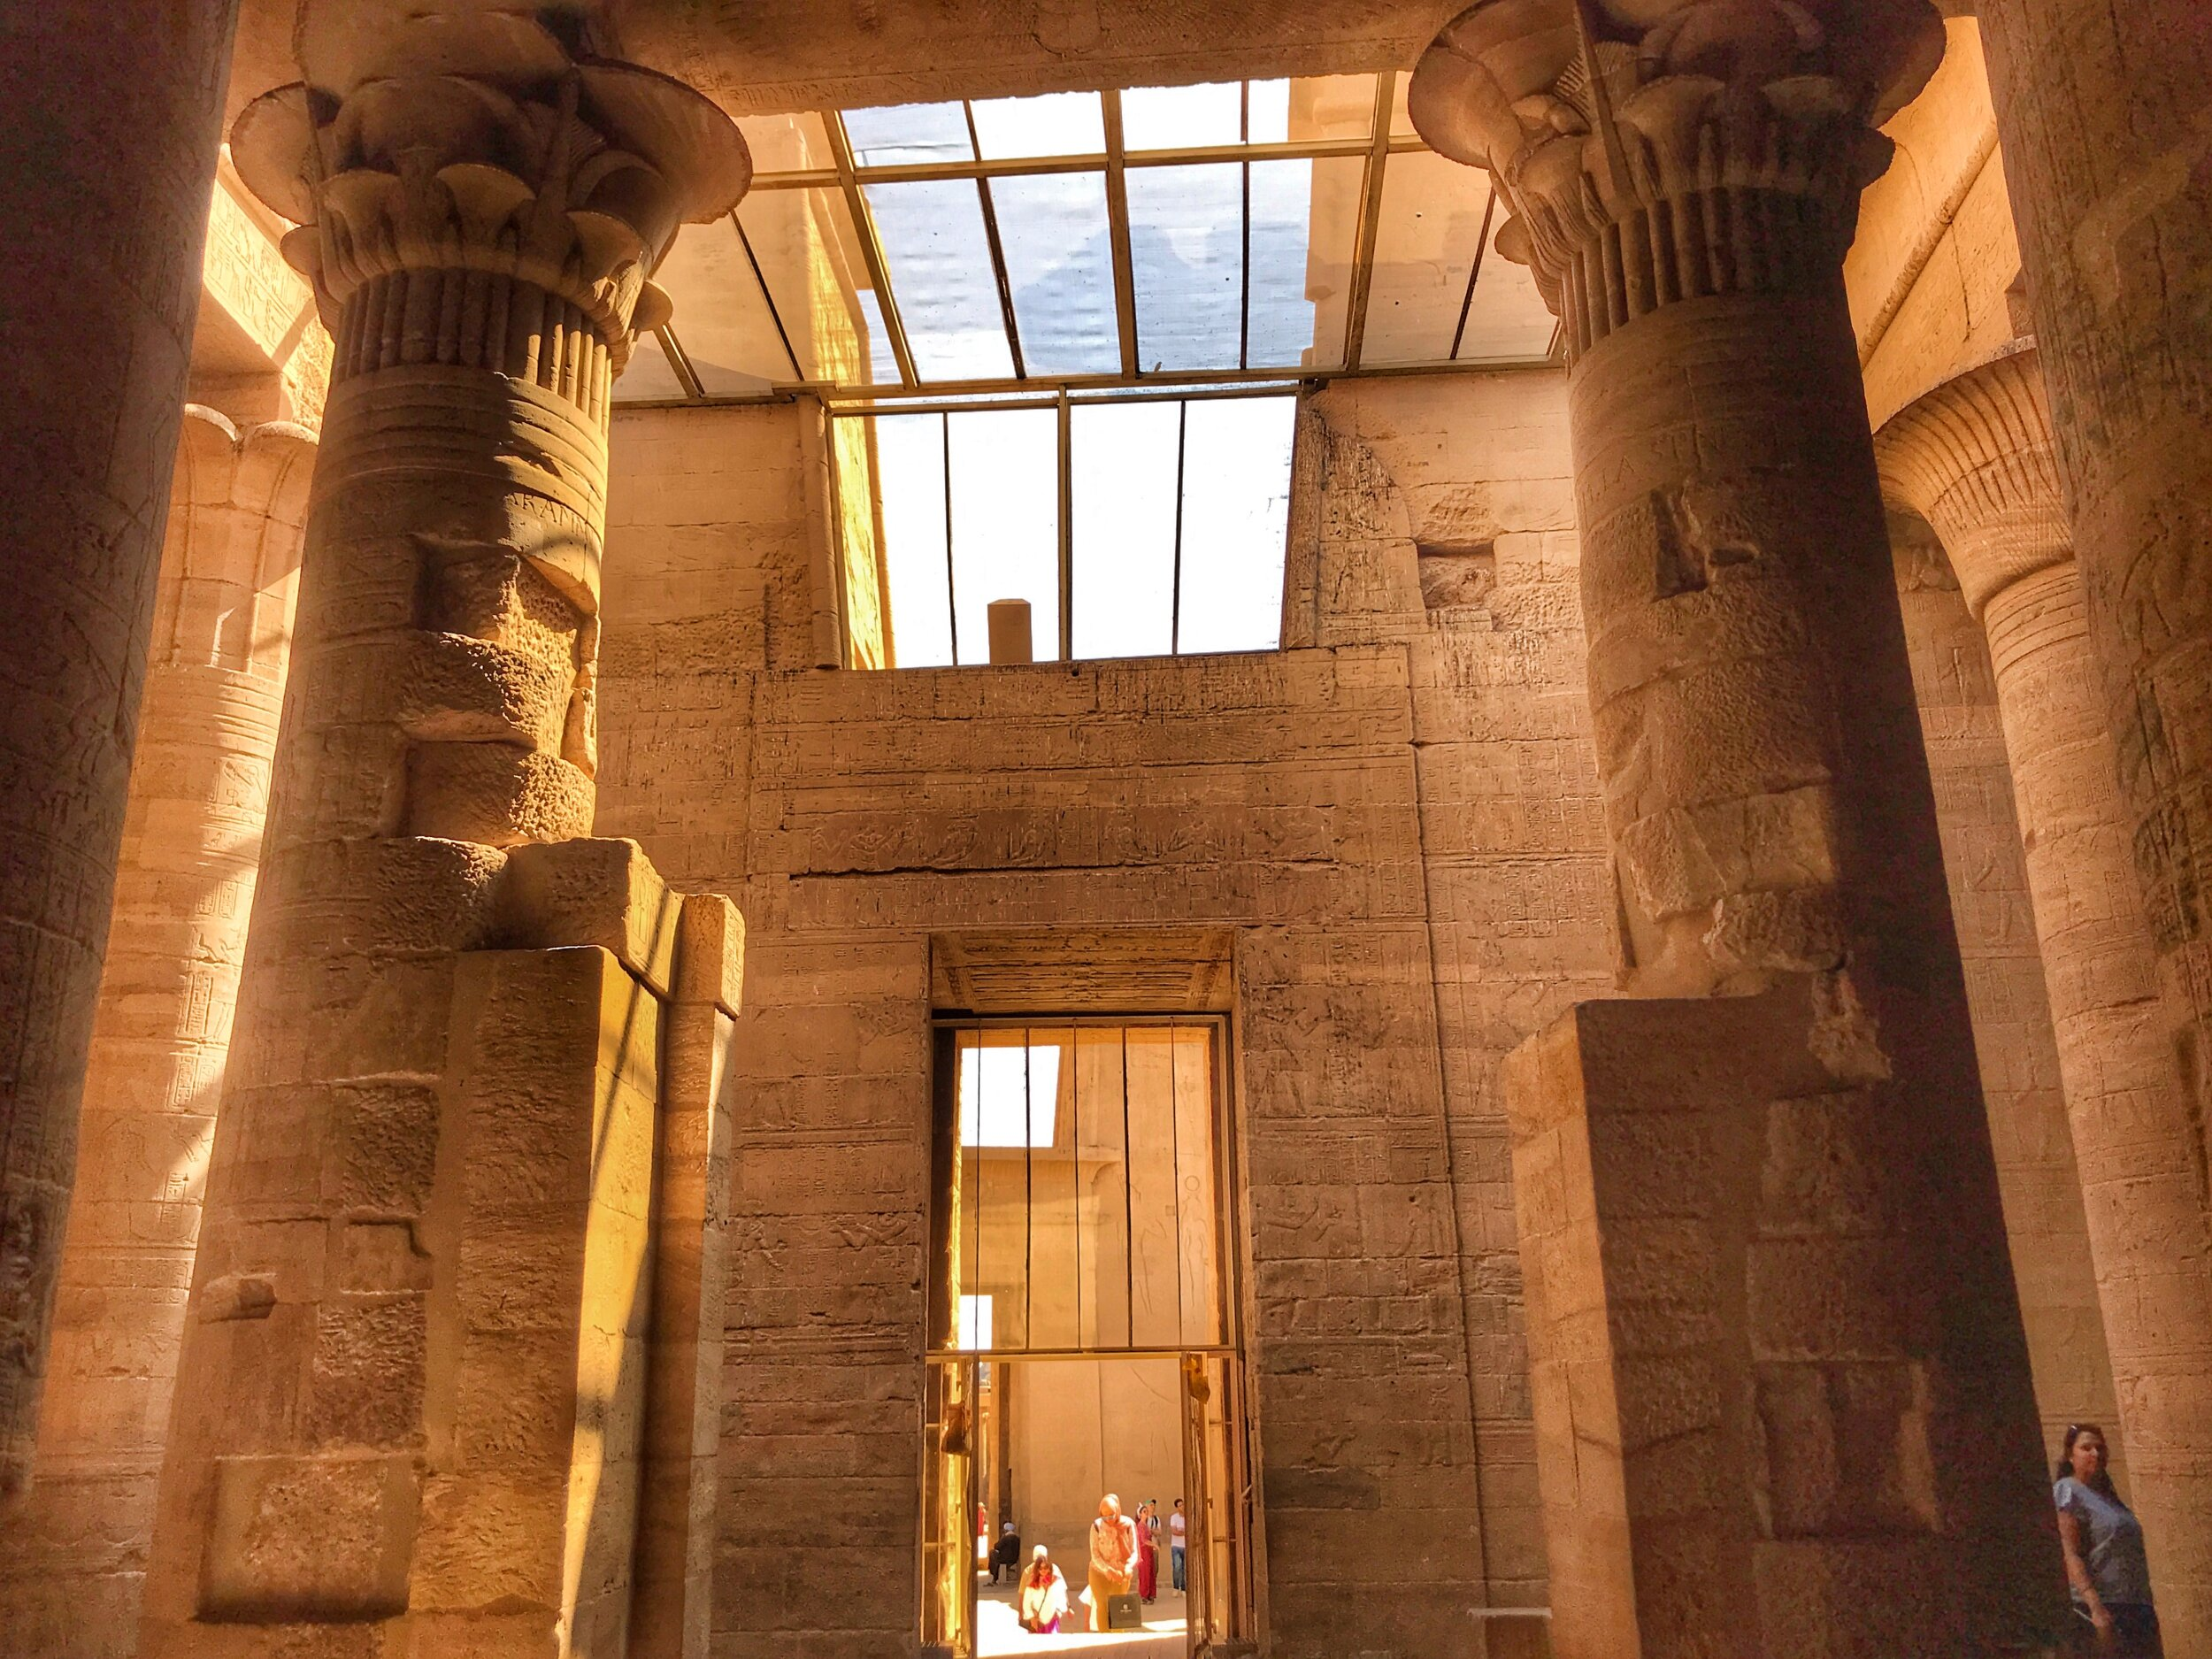 The interior of Philae